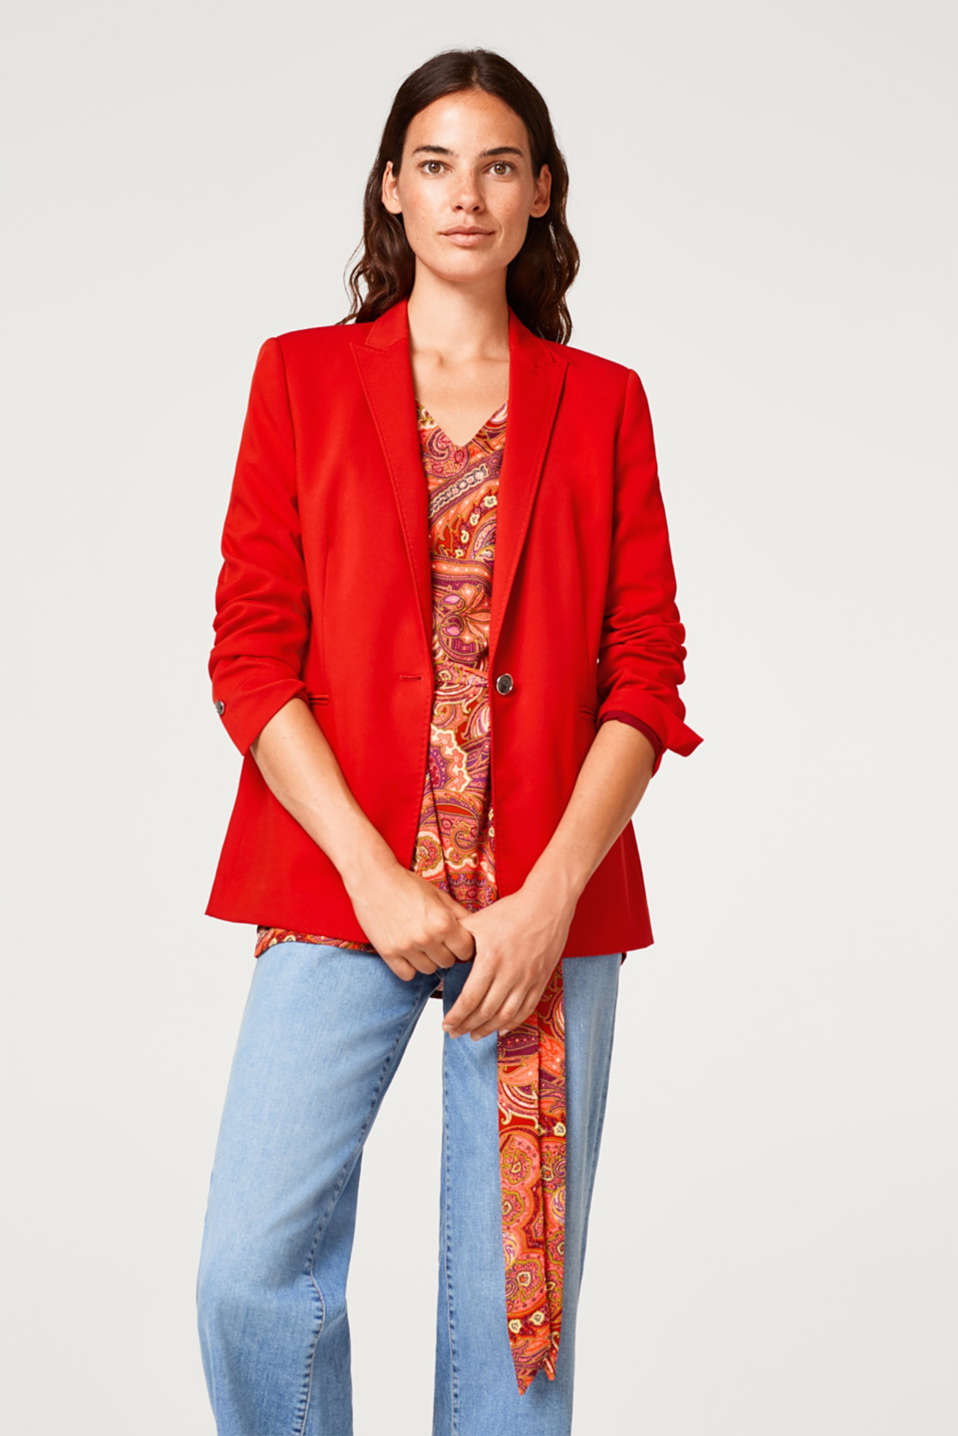 Tunic blouse with a paisley print